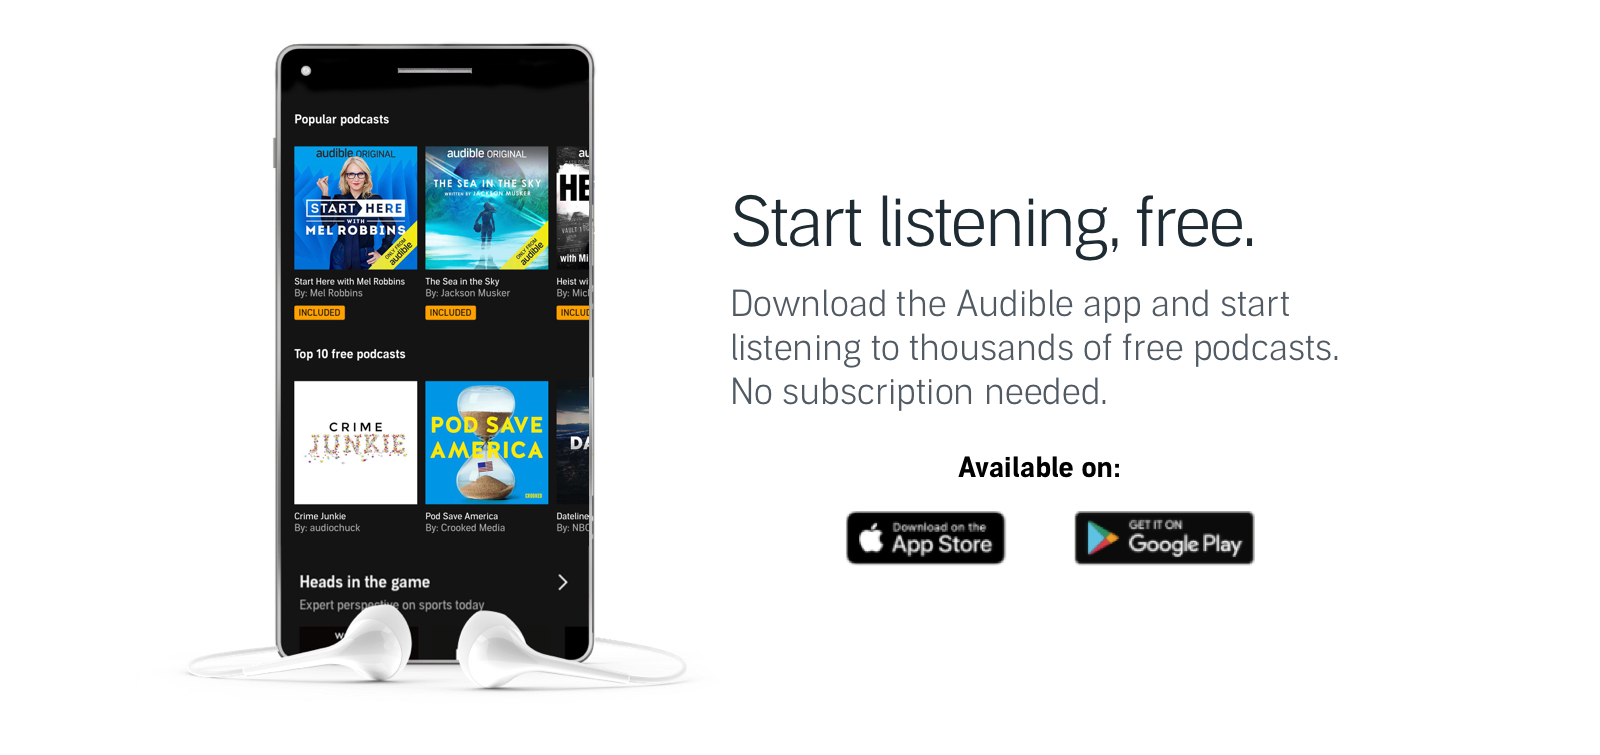 Start listening, free. Download the Audible app and start listening to thousands of free podcasts. No subscription needed. Available on: Download on the App Store. Get it on Google Play.